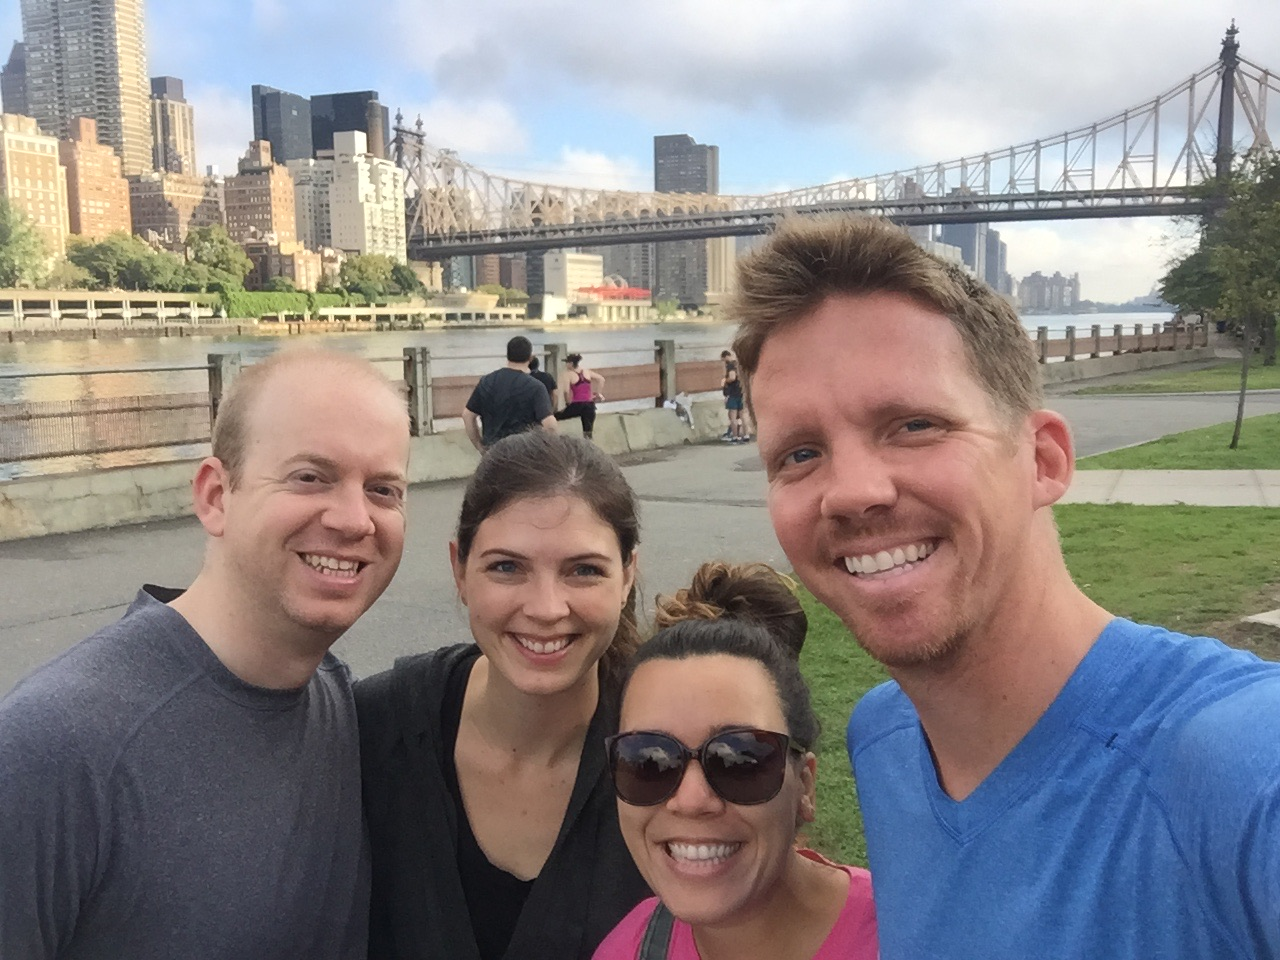 """We signed up for a 5K on Roosevelt Island. It was such a great day for a run.... nowhere near as sweltering as the 4th of July run. It was called """"Go Nuts for Donuts"""", so after the race there was a big donut party."""